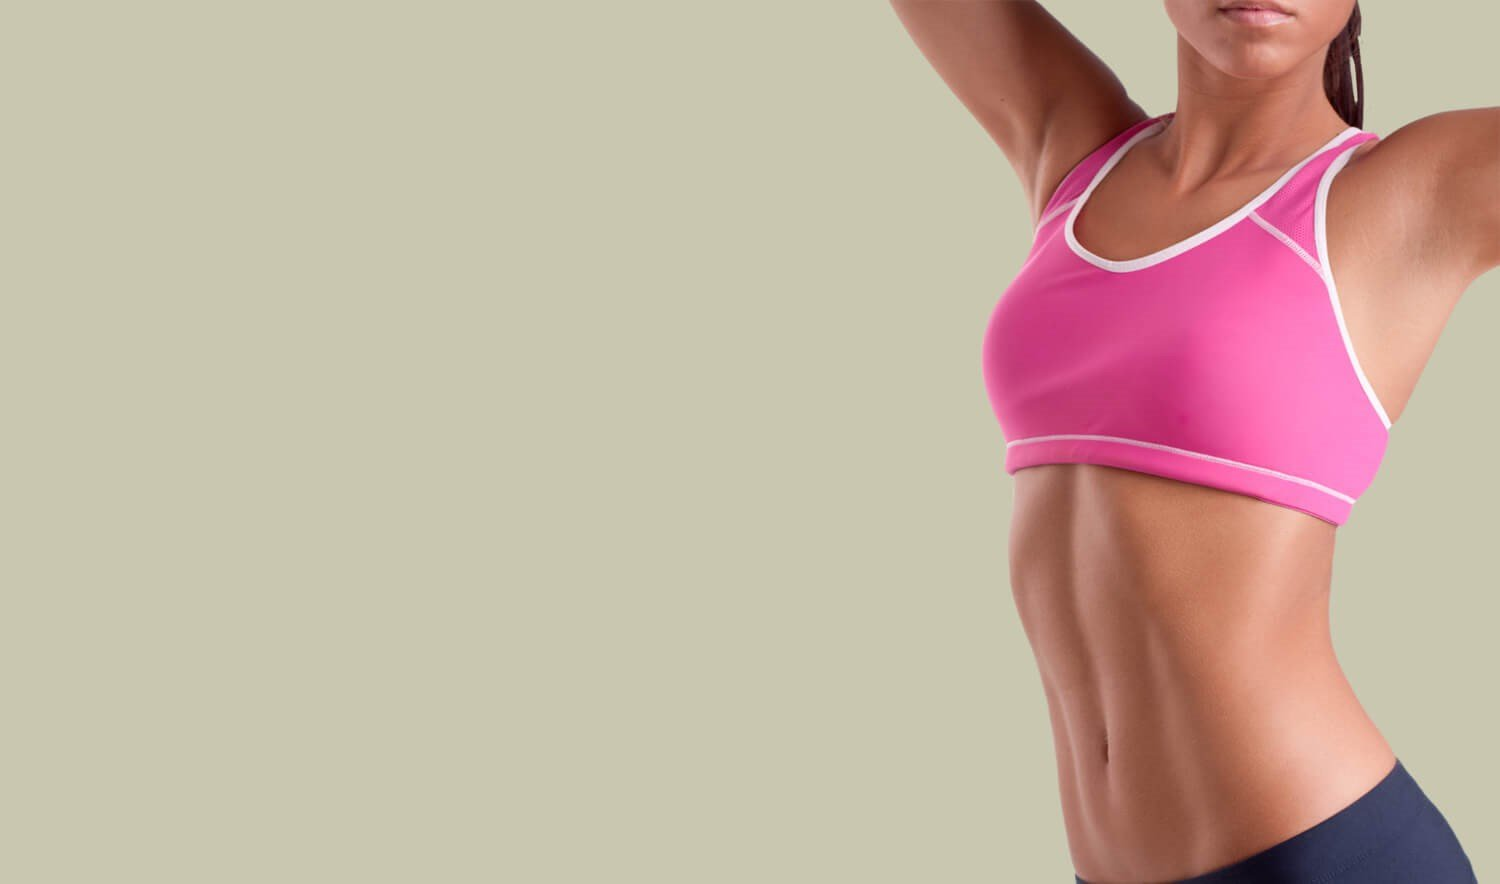 CoolAdvantage and CoolMini Fat Reduction  - COMPLIMENTARY CONSULTS & 20% OFF UNTIL AUGUST 31st!